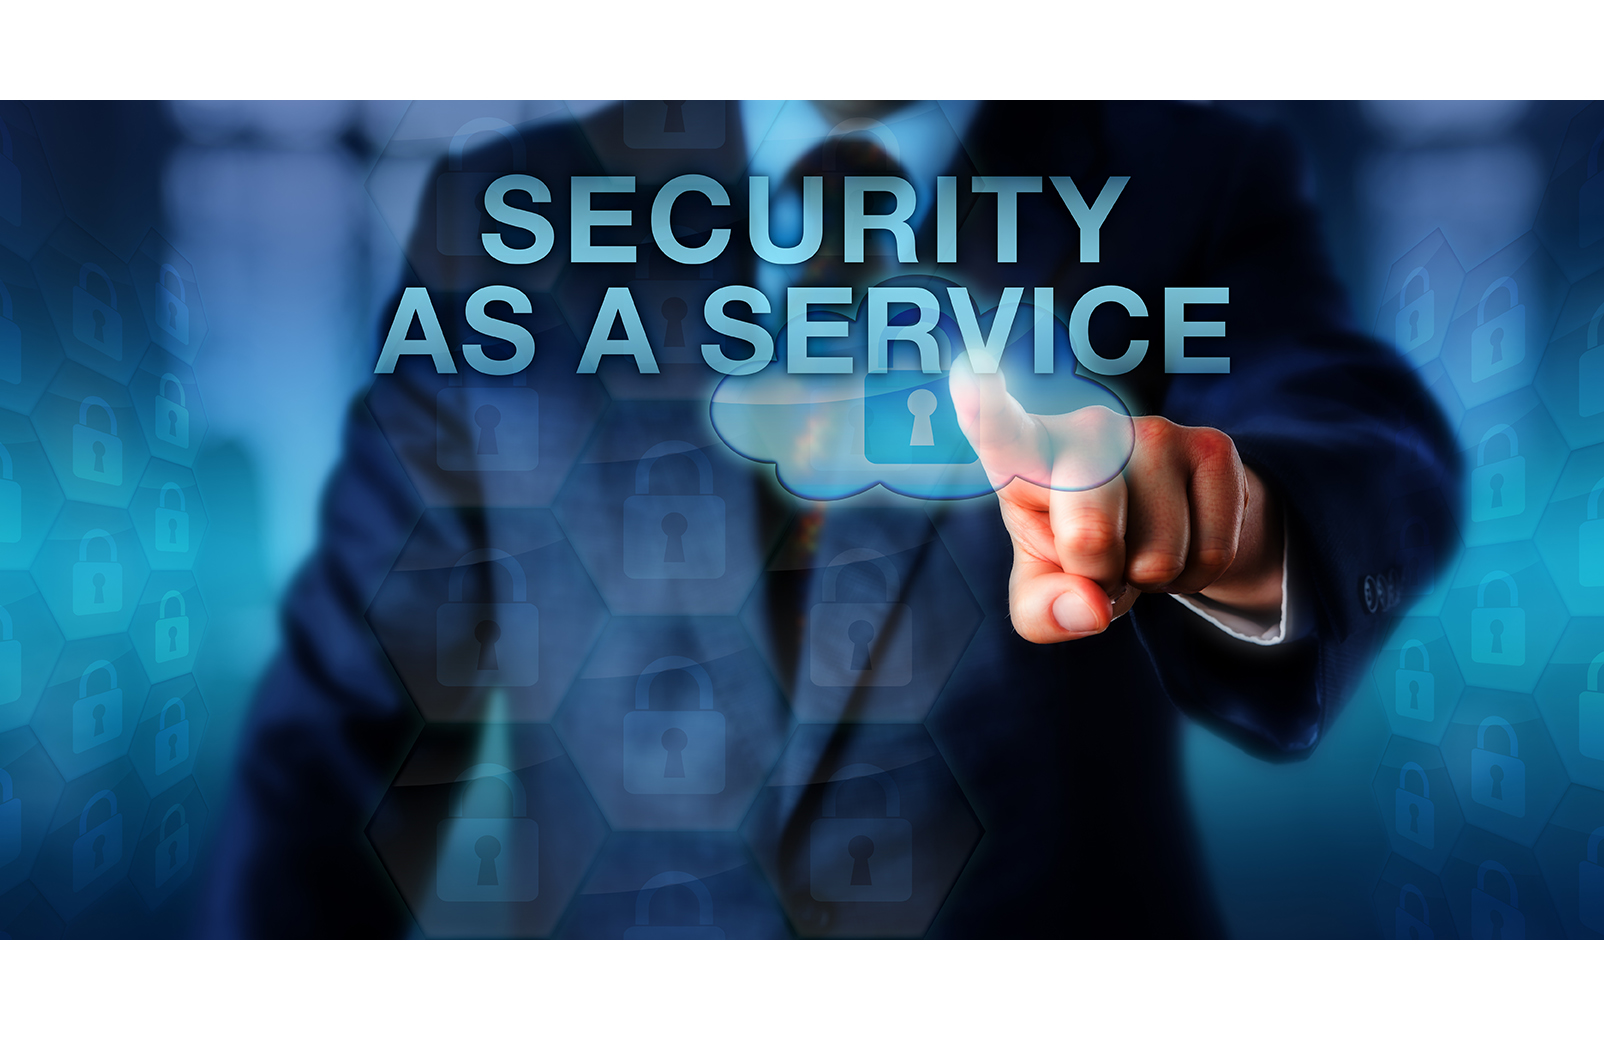 Empower Your IT Team with Security as a Service_Blog-1-2